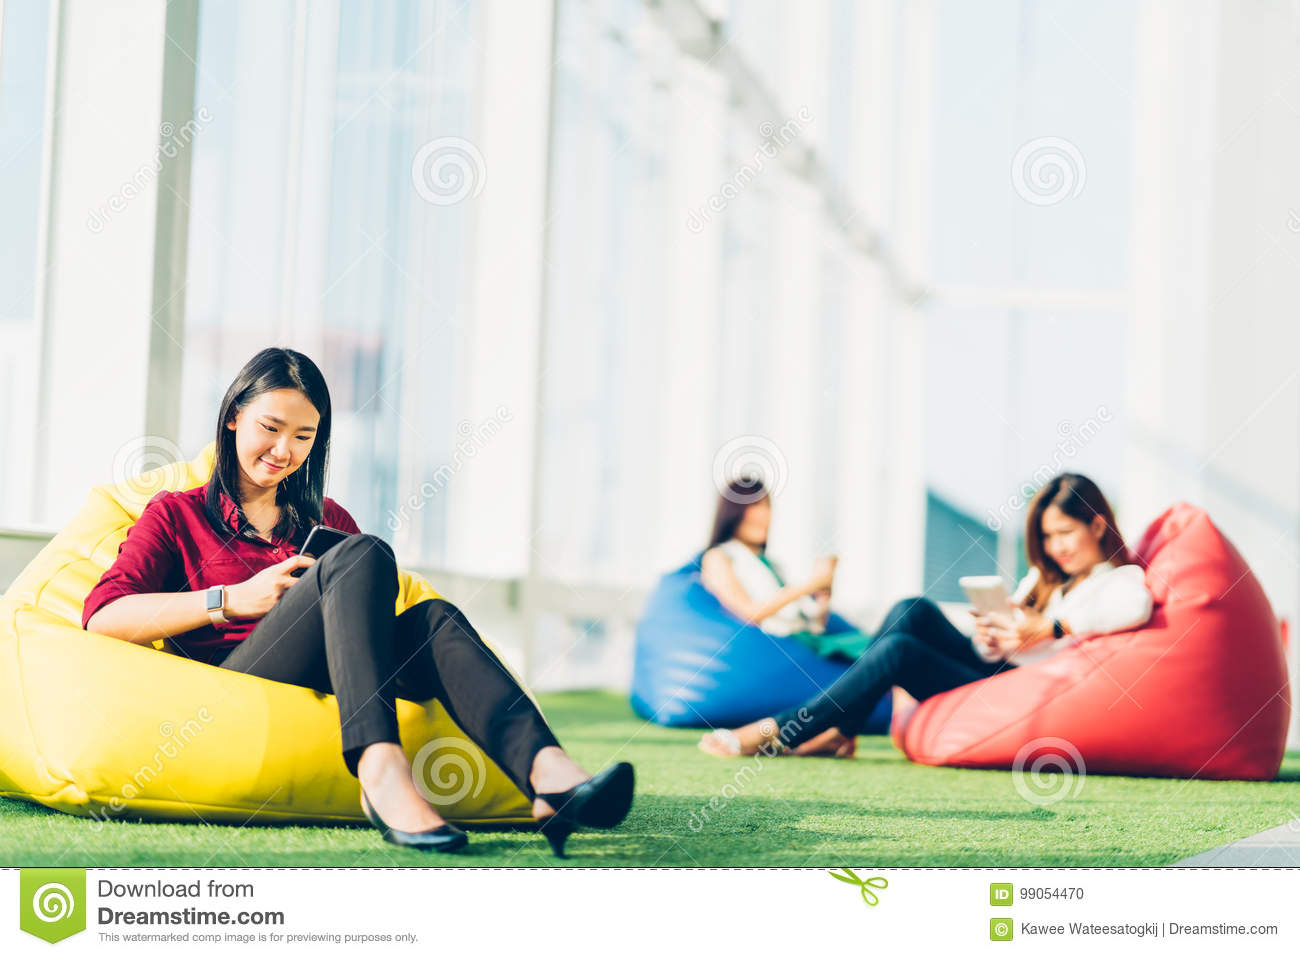 Group of Asian college student or business colleague using smartphone sit together in modern office or university campus